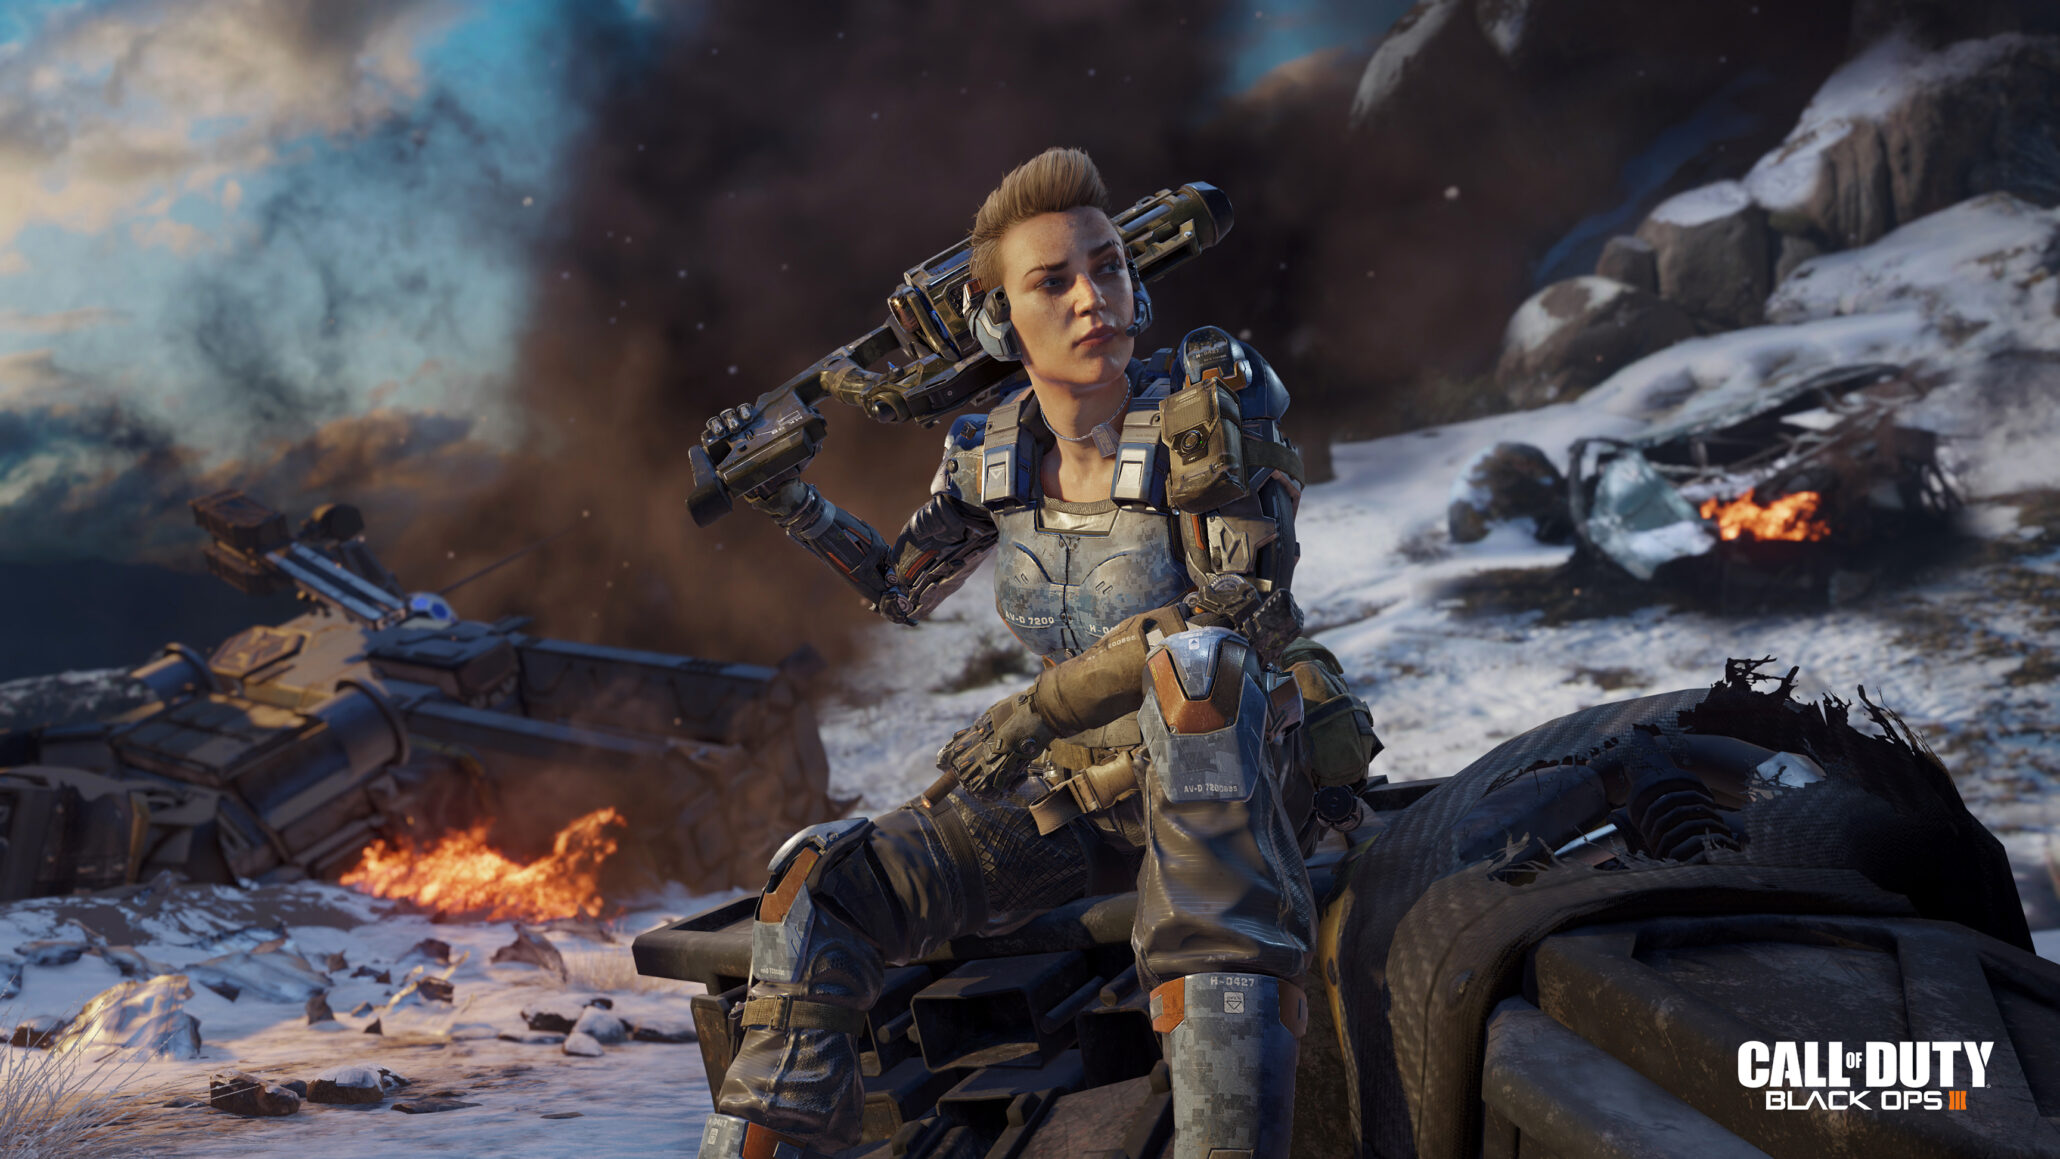 Call of duty black ops 3 is the top selling current gen game call of duty black ops 3 gumiabroncs Gallery